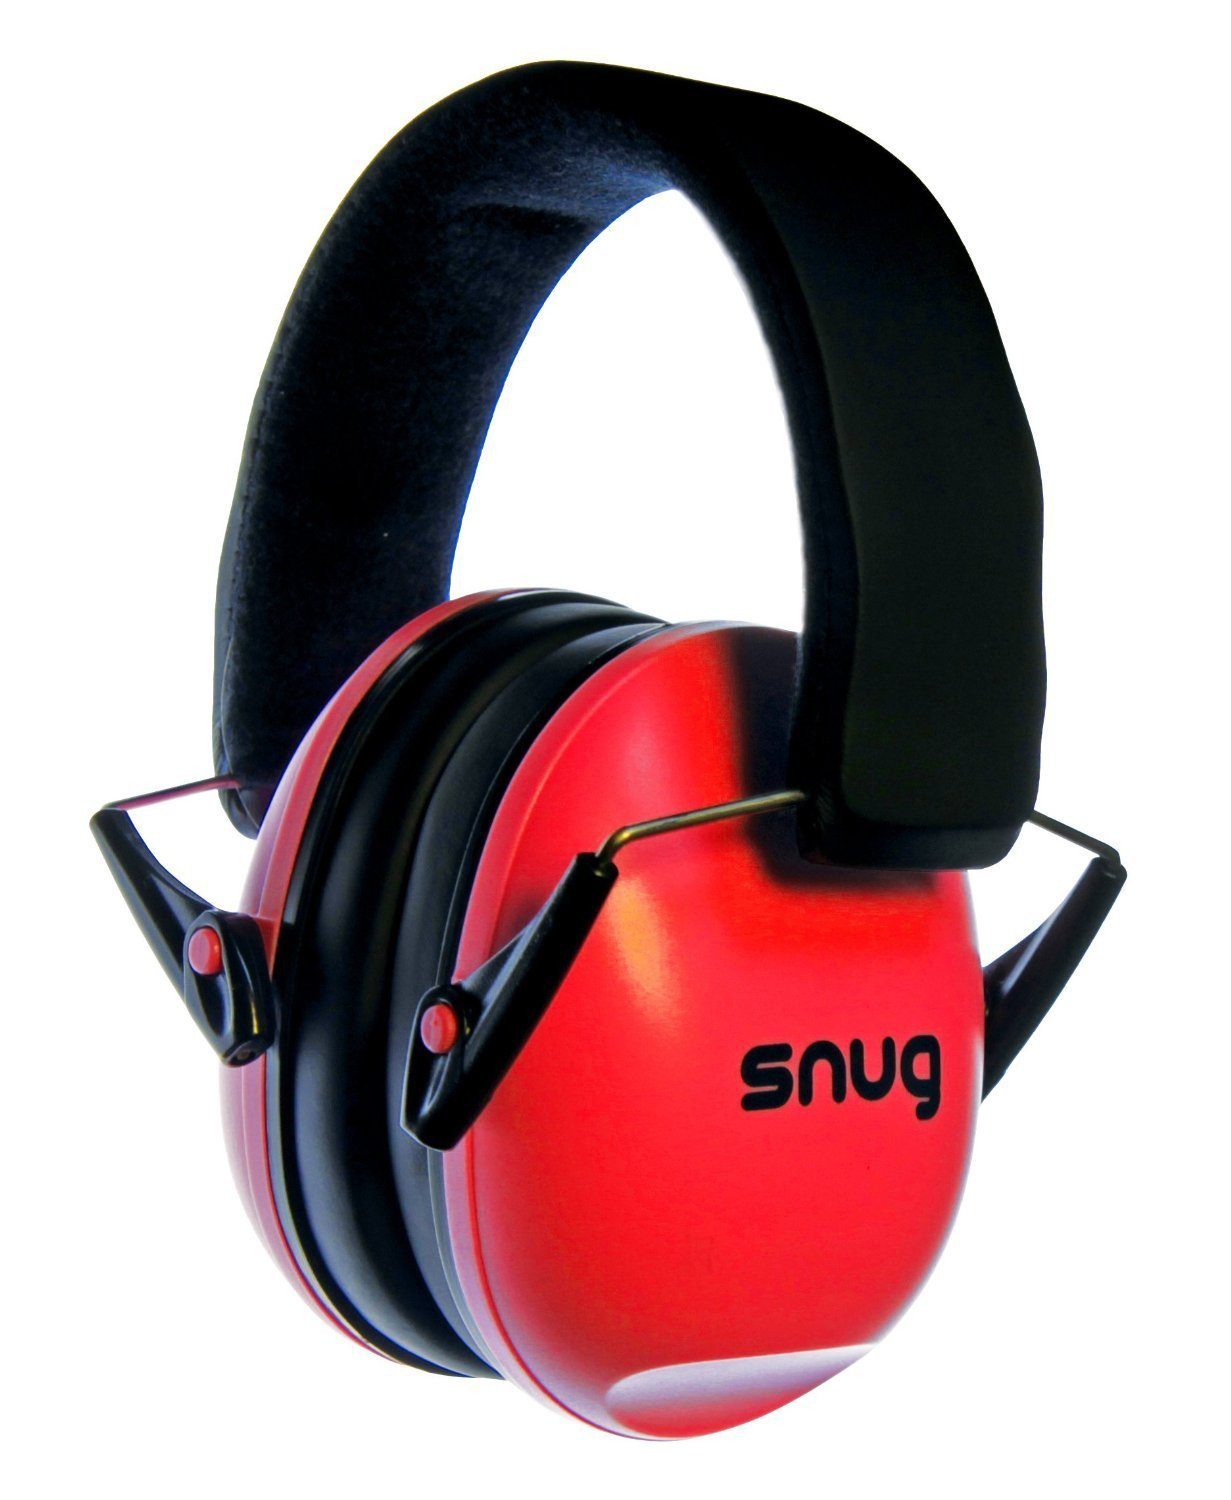 Snug Kids Earmuffs/Hearing Protectors – Adjustable Headband Ear Defenders for Children and Adults (Red) by Snug (Image #1)